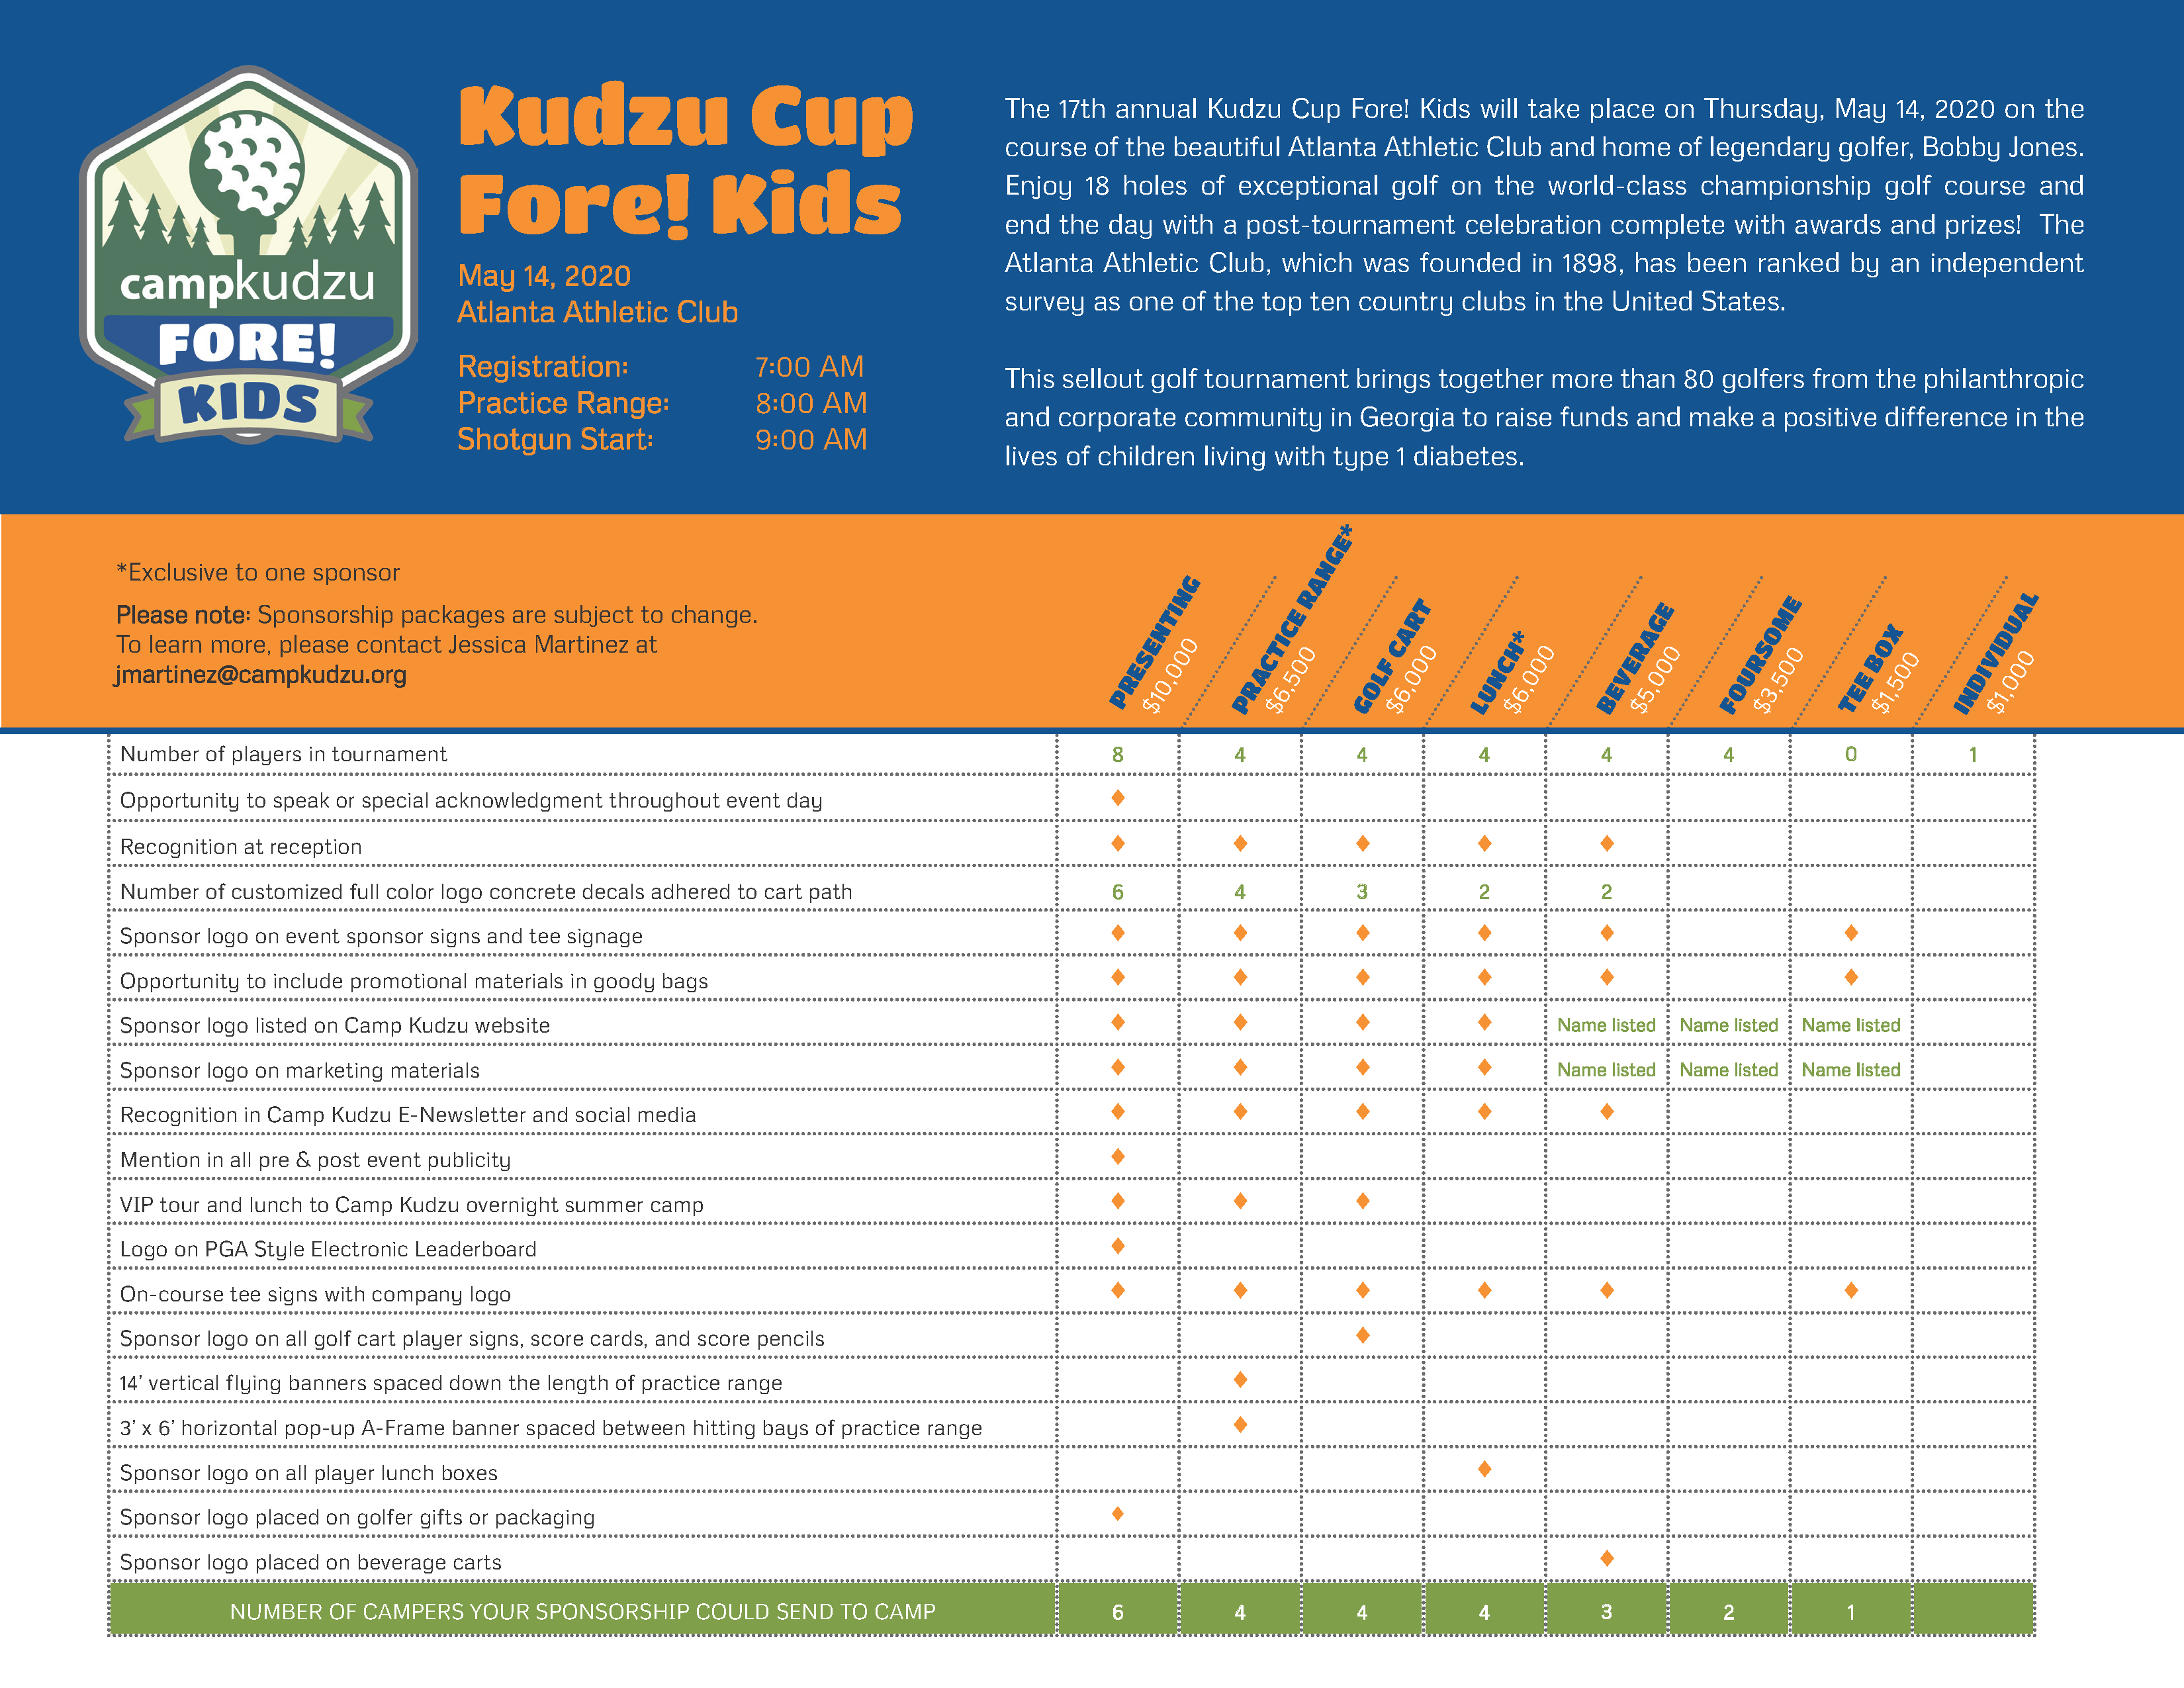 Image with information on Sponsorship levels for Kudzu Cup Fore! Kids